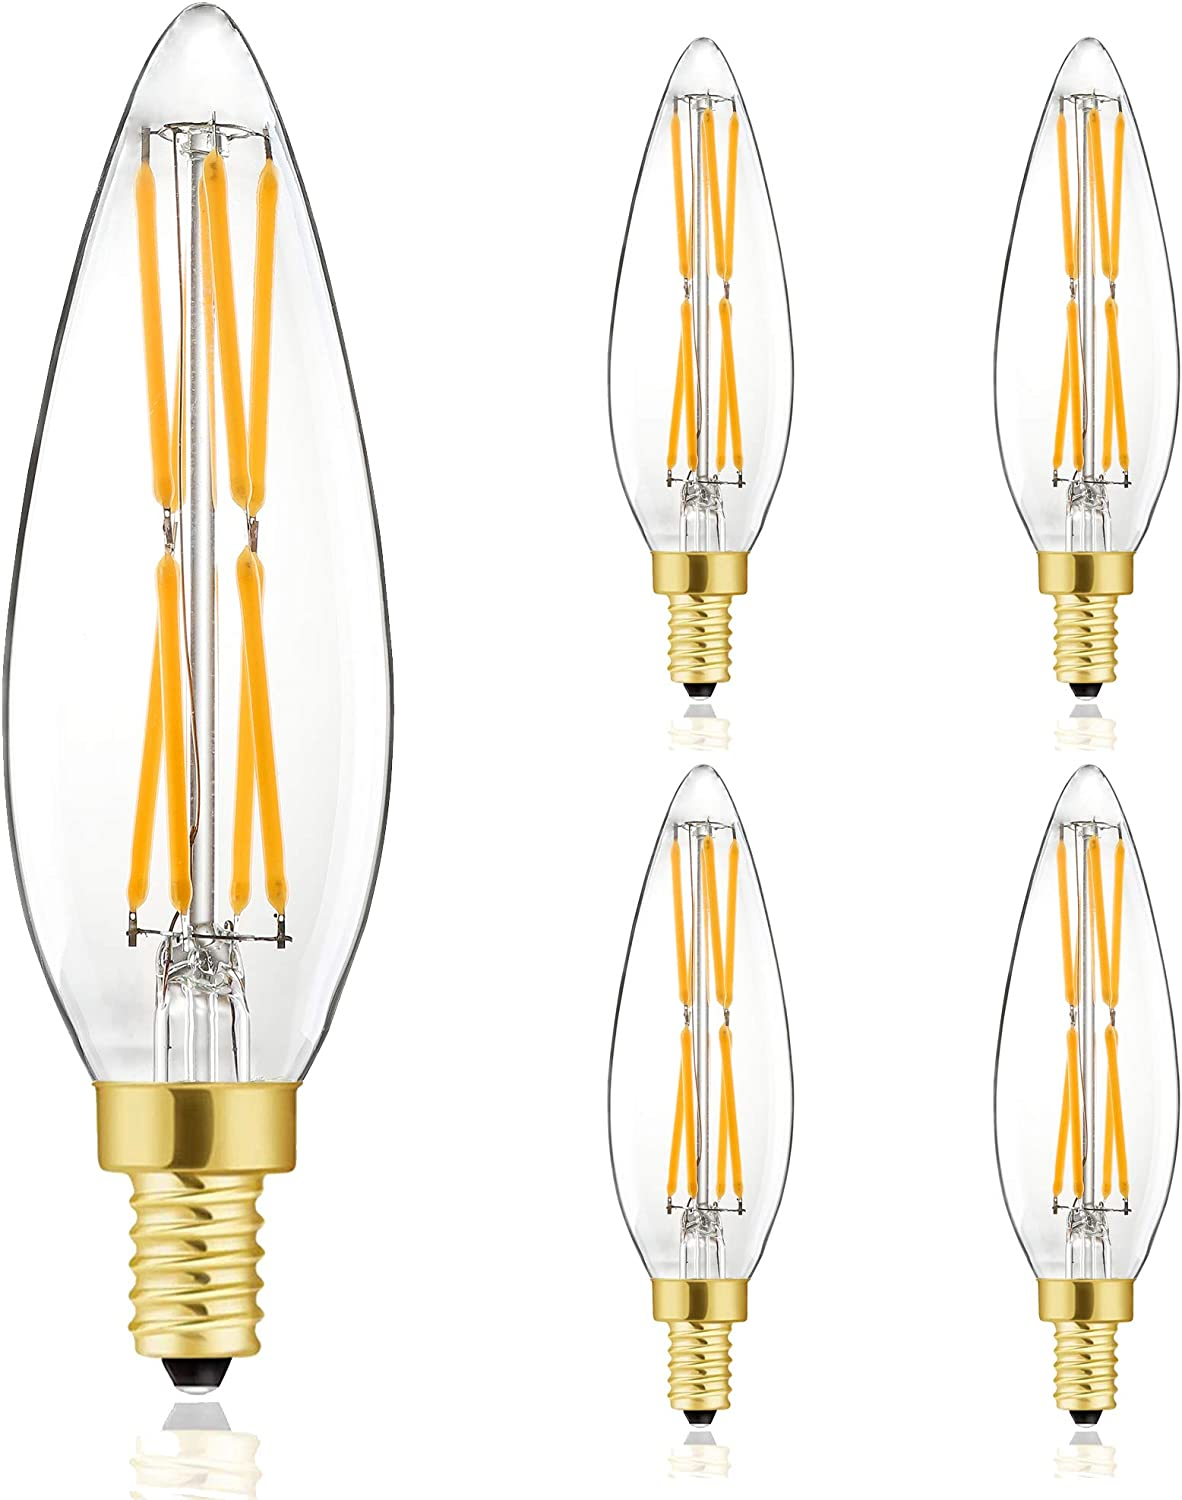 E12 Edison 8W LED Bulb, 100 watt Equivalent Candelabra Dimmable Chandelier Light Bulbs 2700K Warm White Clear 800lm E12 Vintage LED Filament Vintage Candle Bulb with Decorative,4.85in,4-Pack.